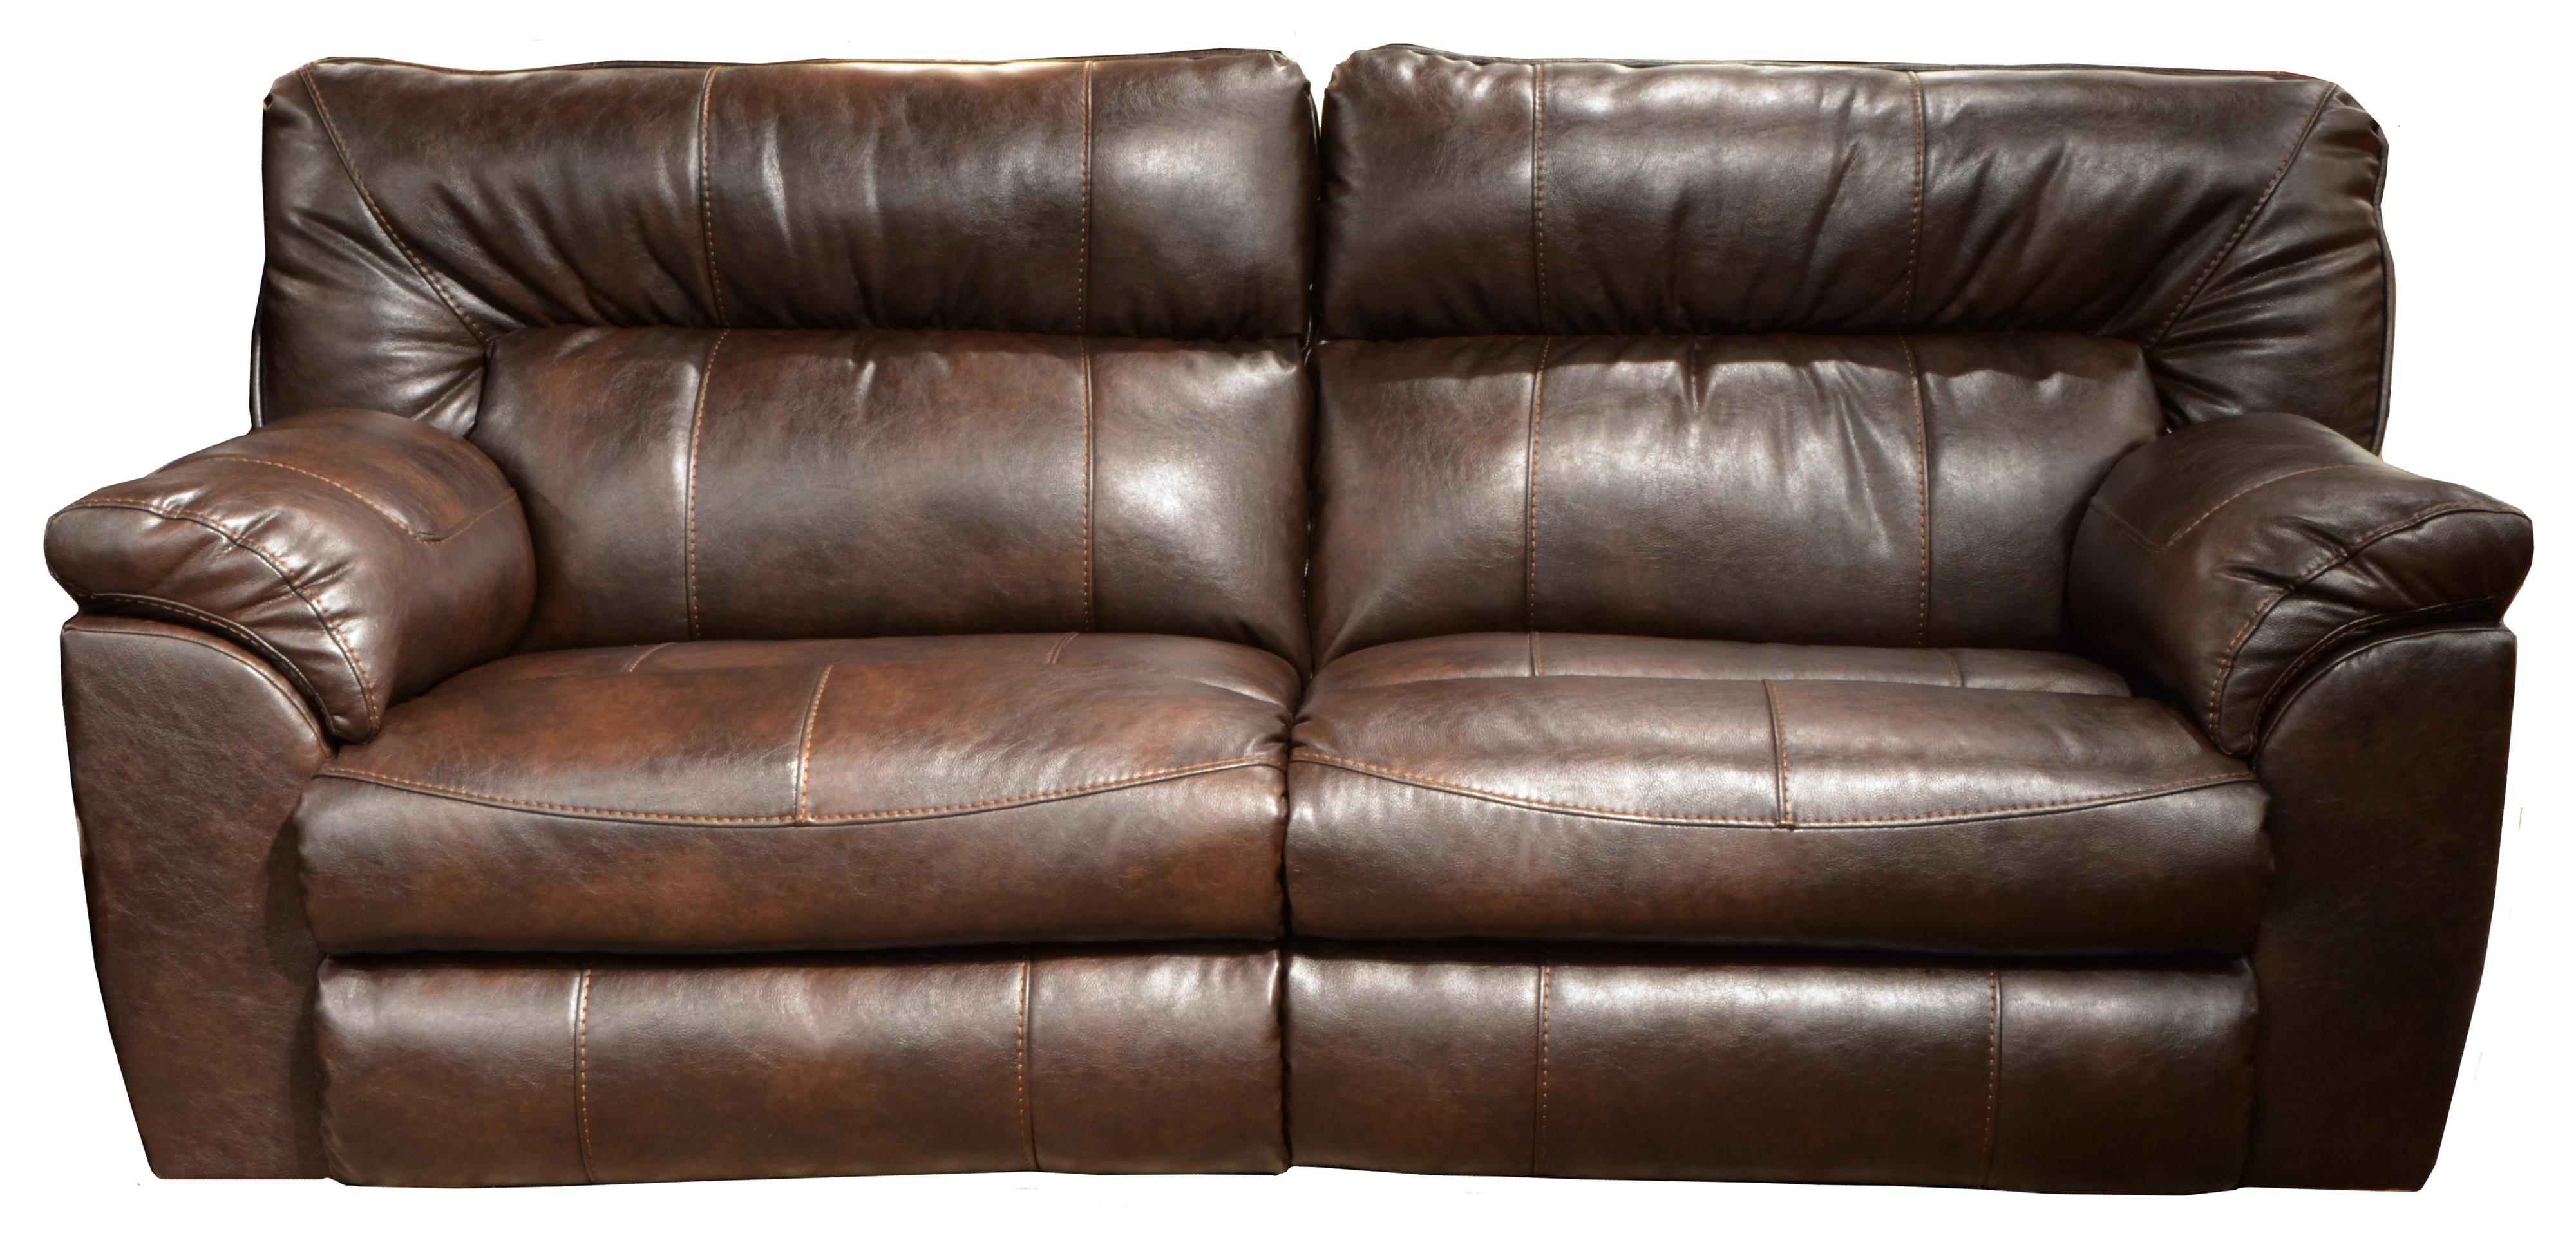 MAVERICK Extra Wide Reclining Sofa by Catnapper at EFO Furniture Outlet